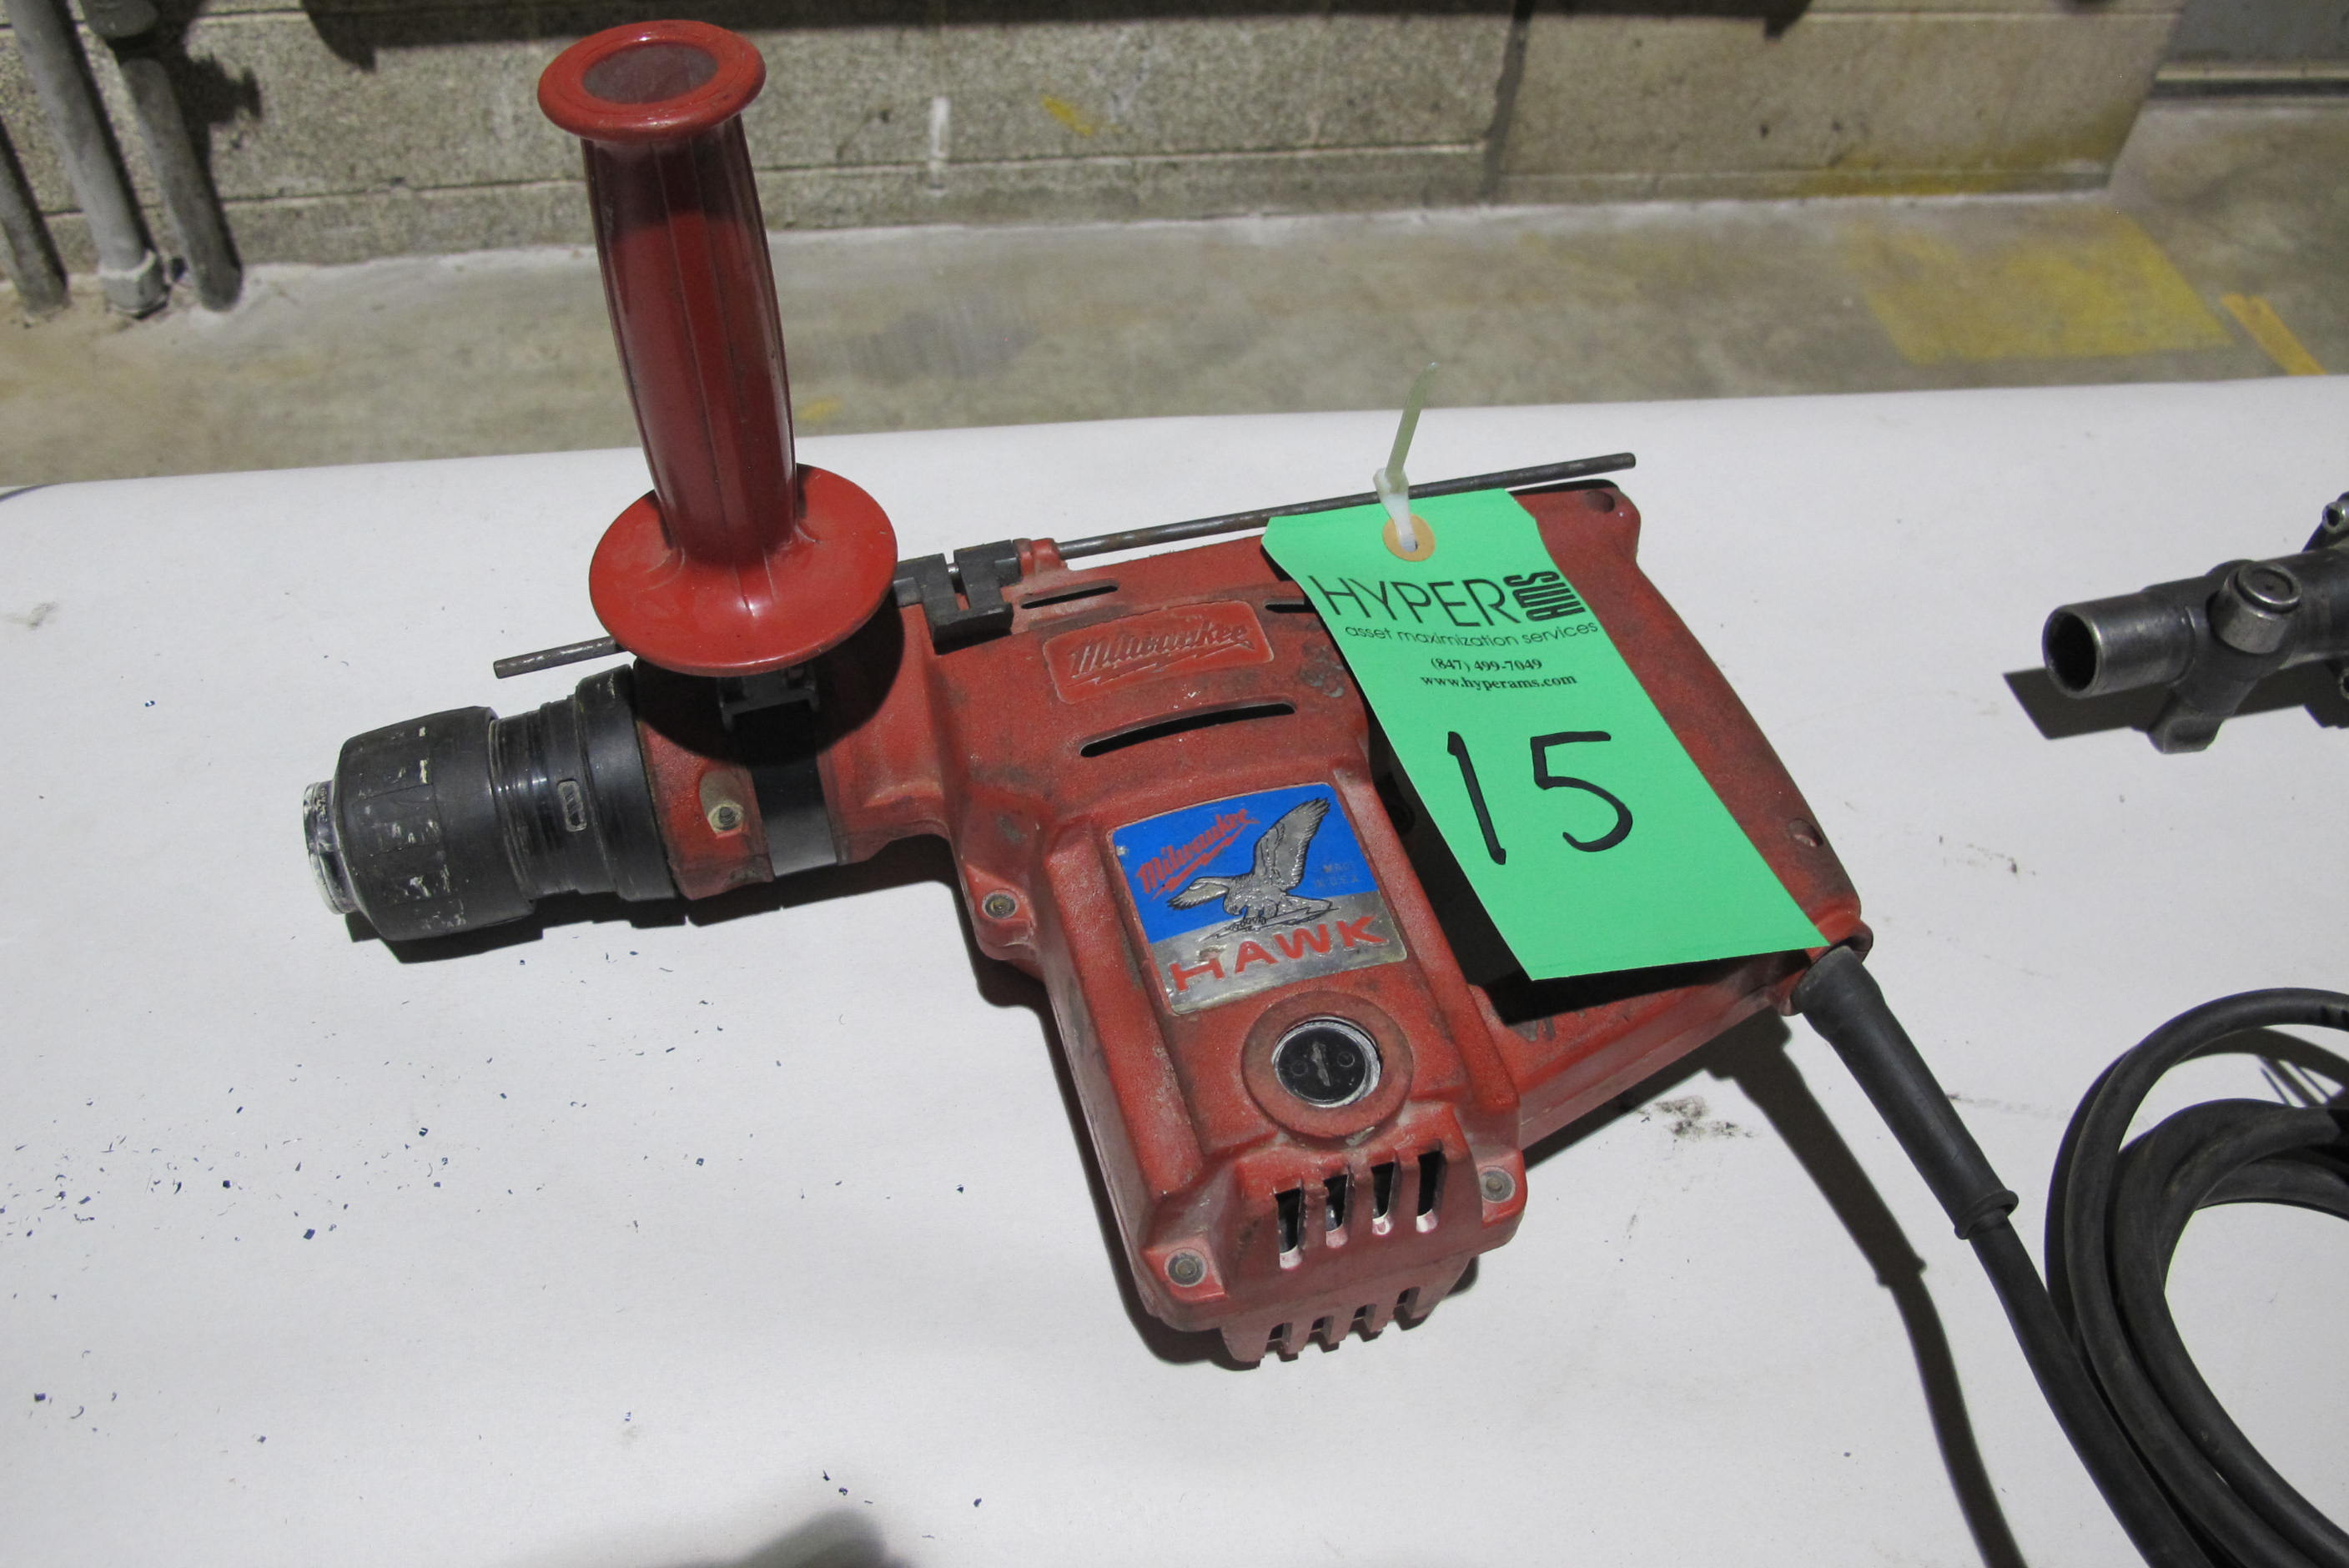 Lot 15 - Milwaukee Cat # 5362-1 Heavy Duty hammer drill